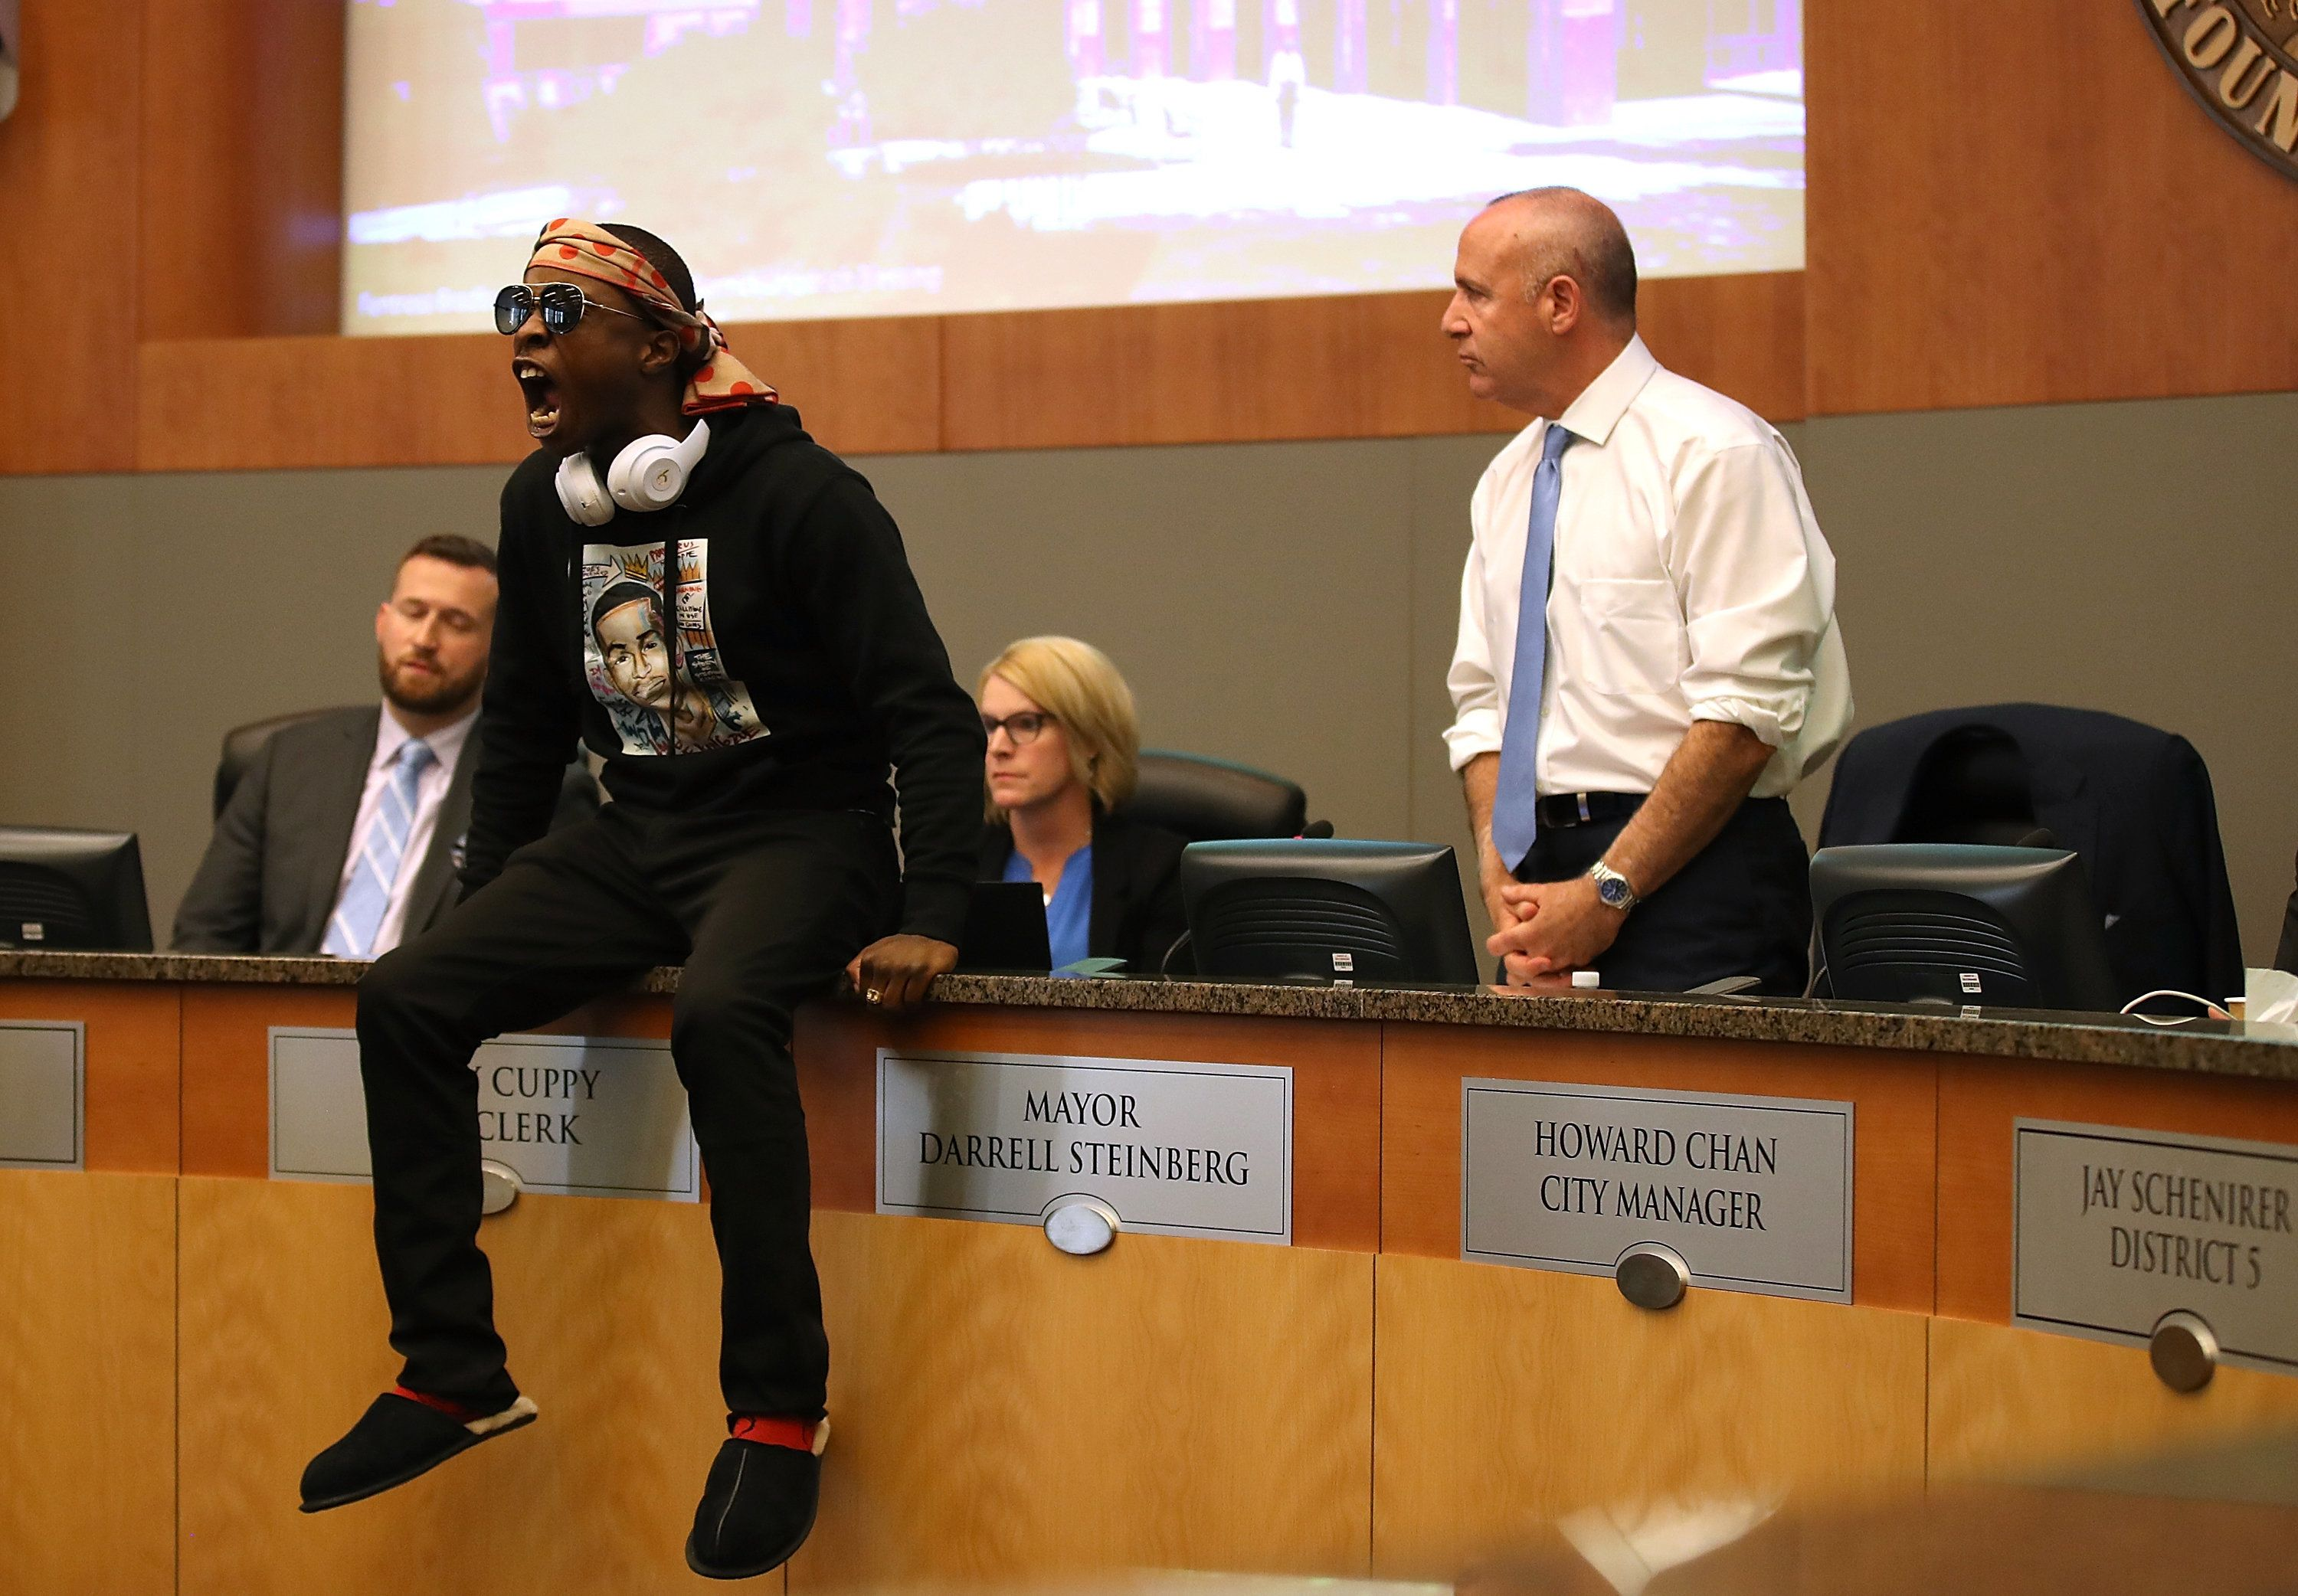 Stevante Clark, brother of Stephon Clark, disrupts a special city council meeting meeting at Sacramento City Hall on March 27